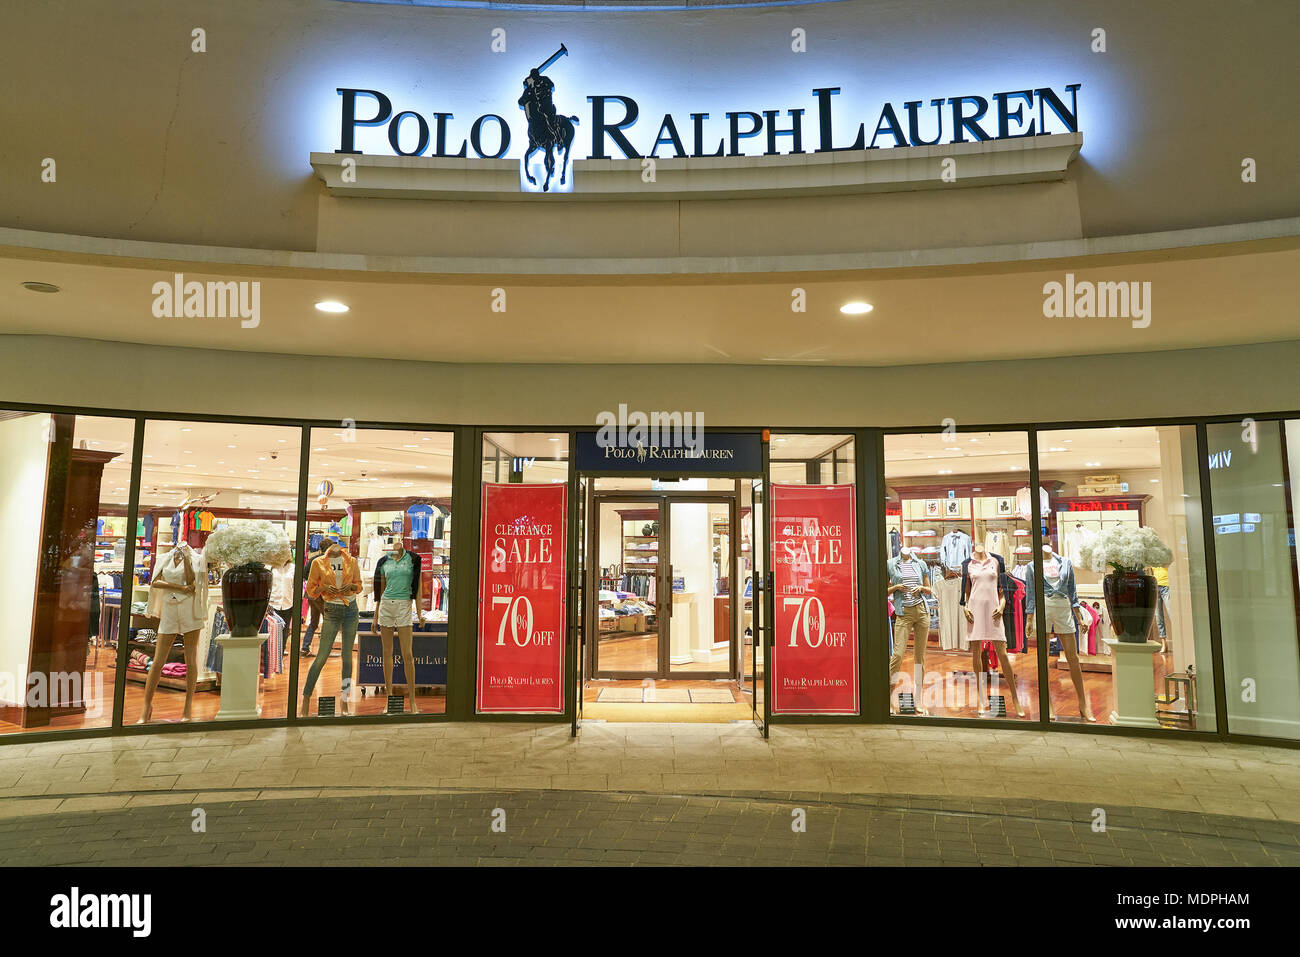 Korea Lauren BusanSouth Ralph At Store May 252017Polo Lotte 0kXZN8nOPw